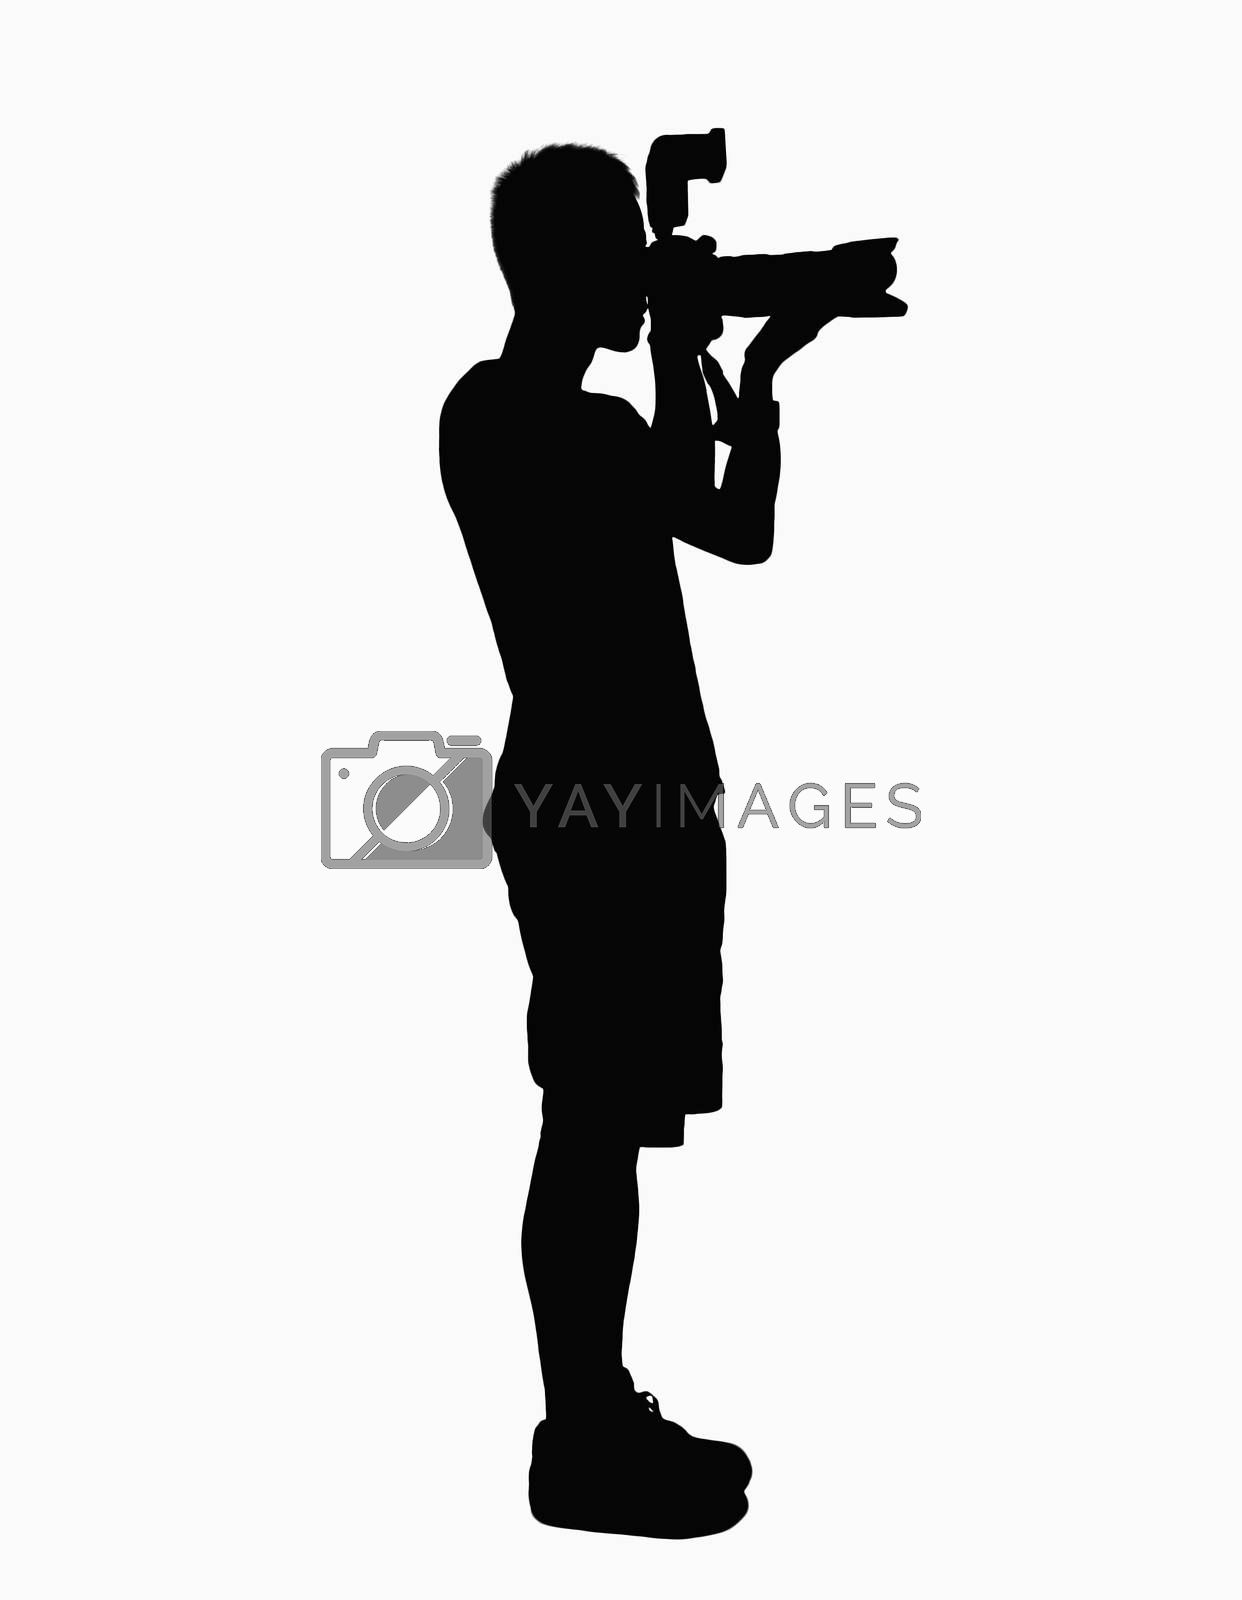 Silhouette of man holding camera. by XiXinXing